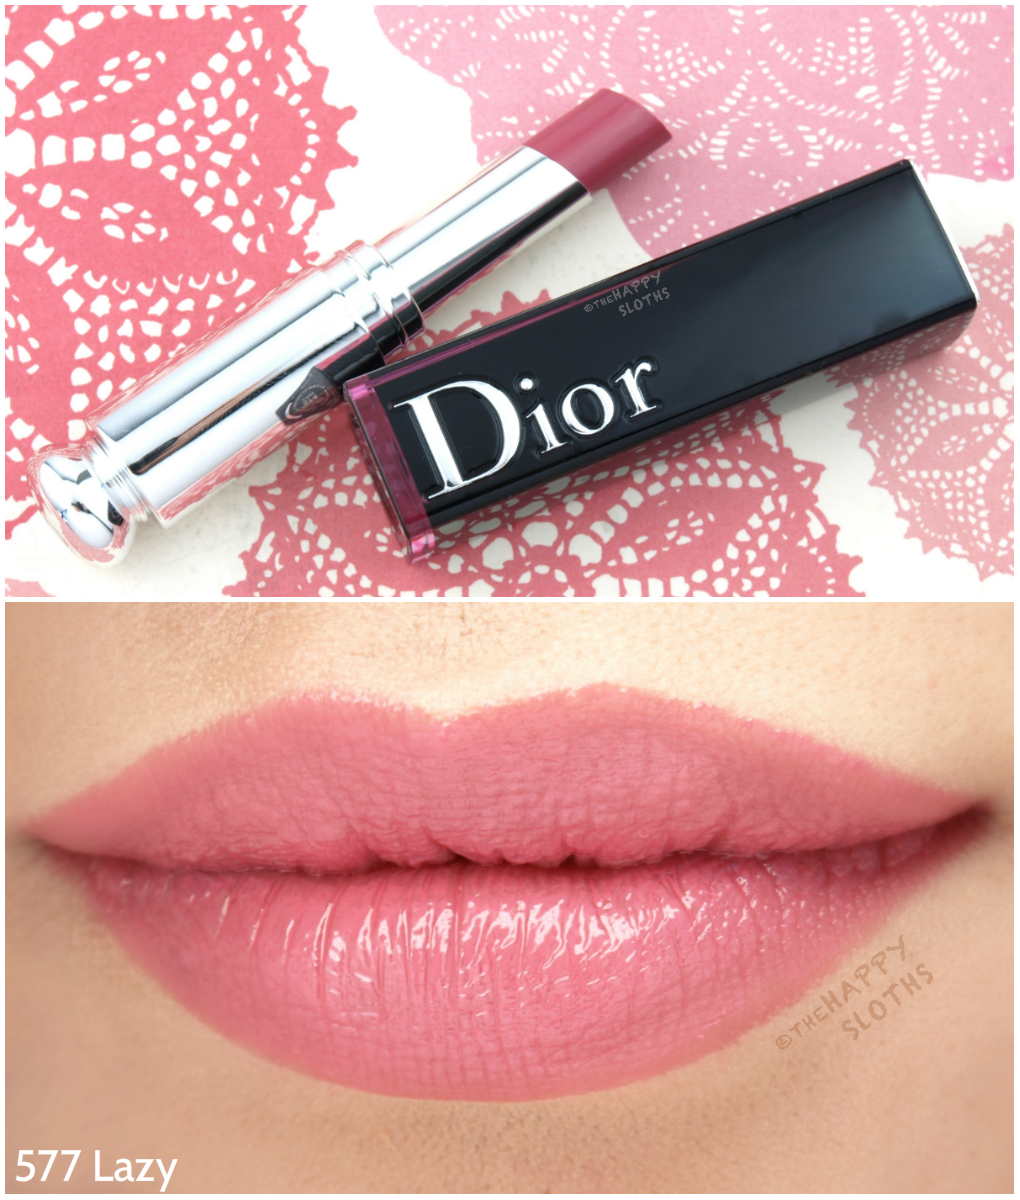 "Dior Addict Lacquer Stick ""577 Lazy"": Review and Swatches"